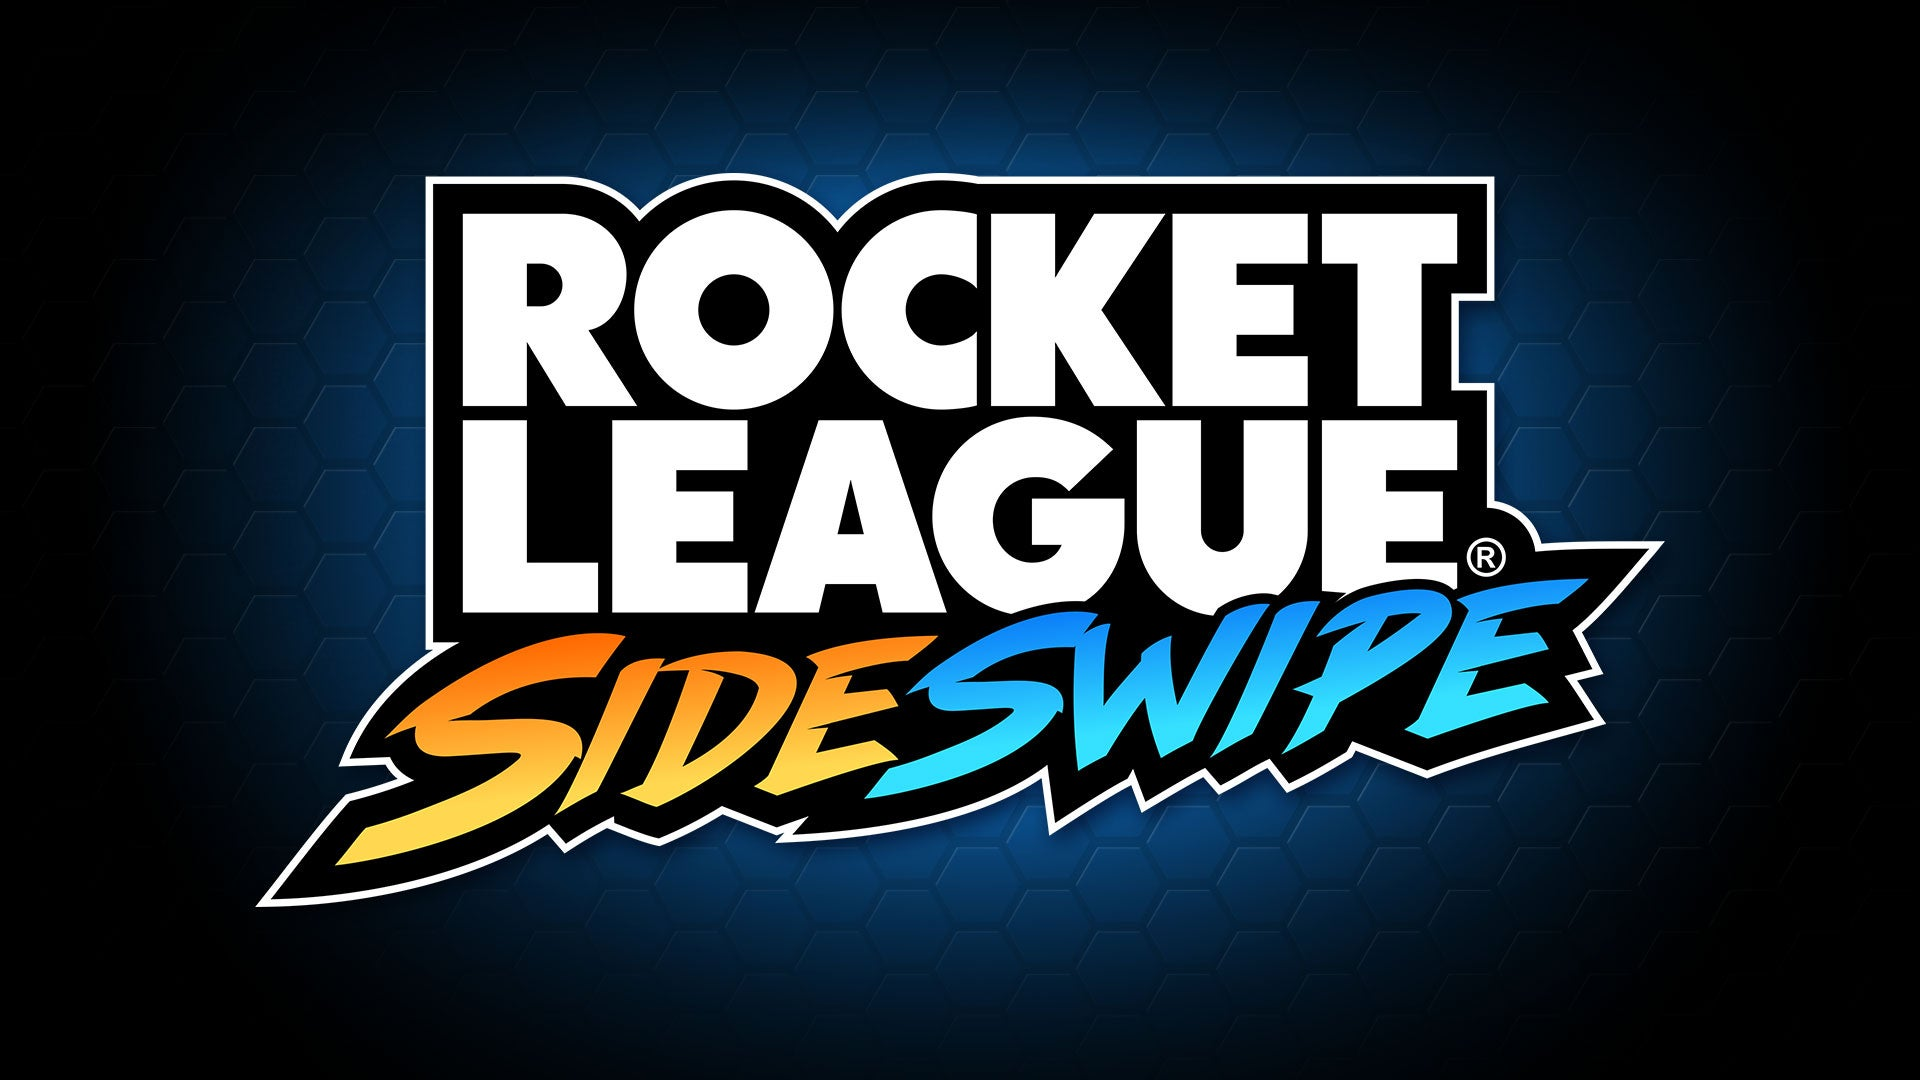 Rocket League Sideswipe Logo